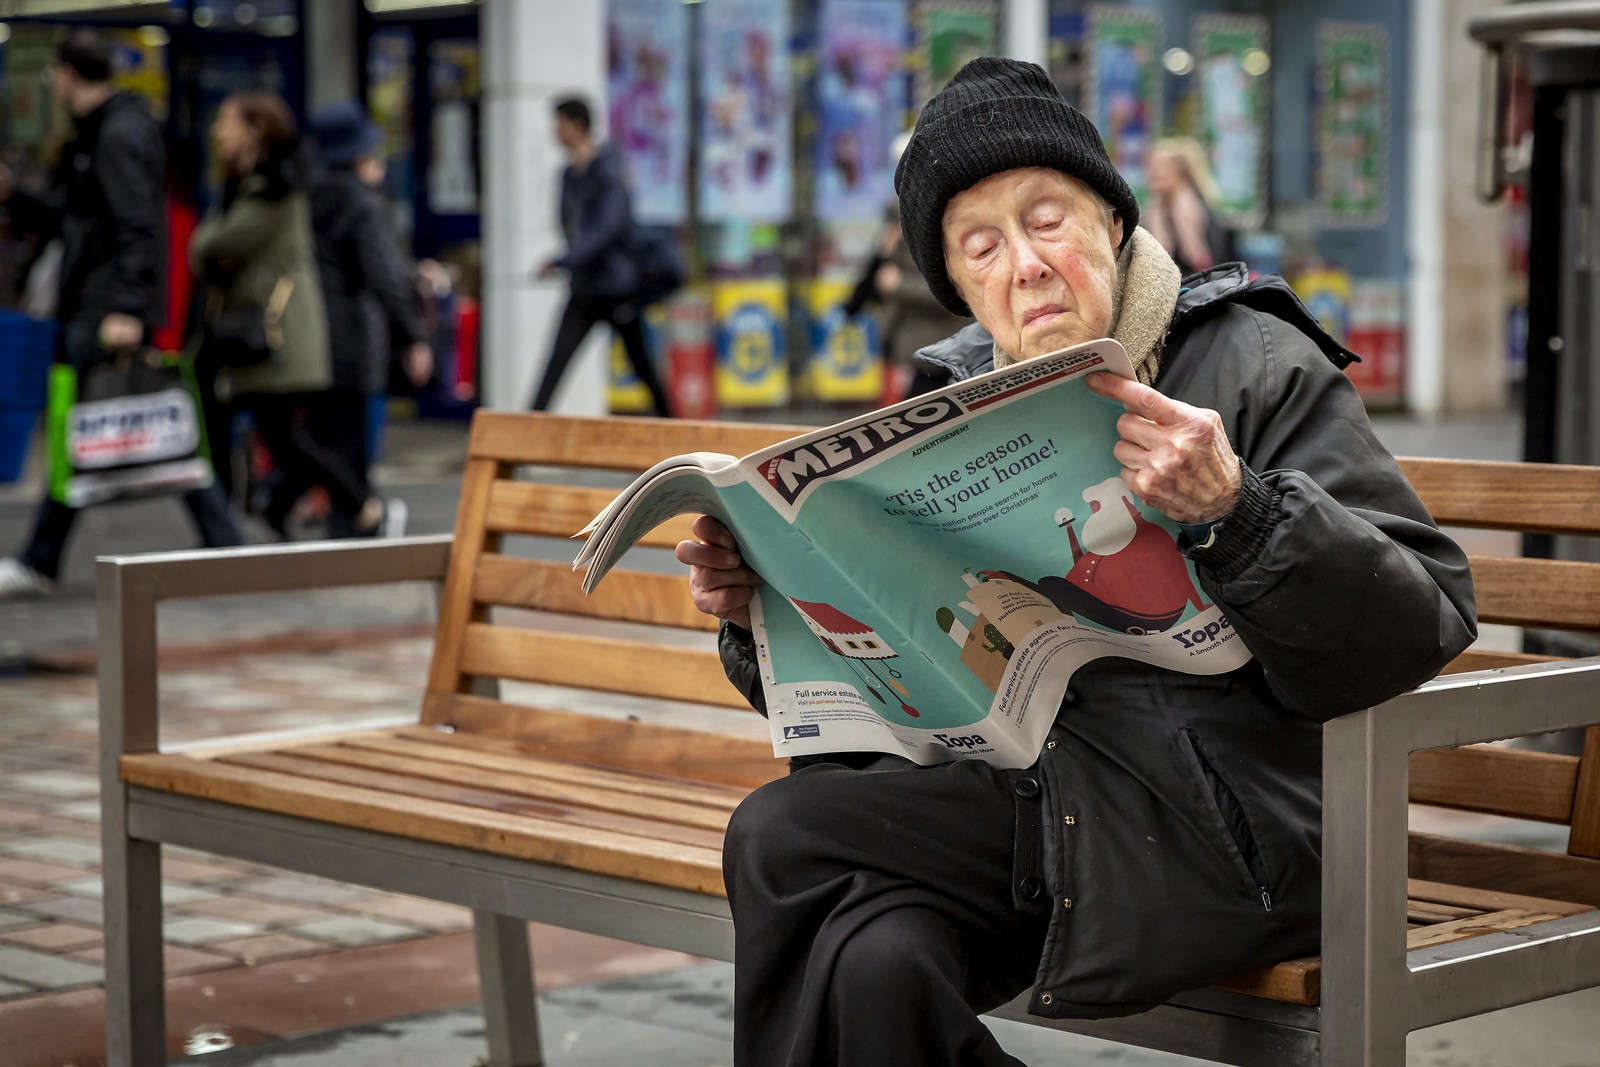 candid photography newspaper by leanne boulton